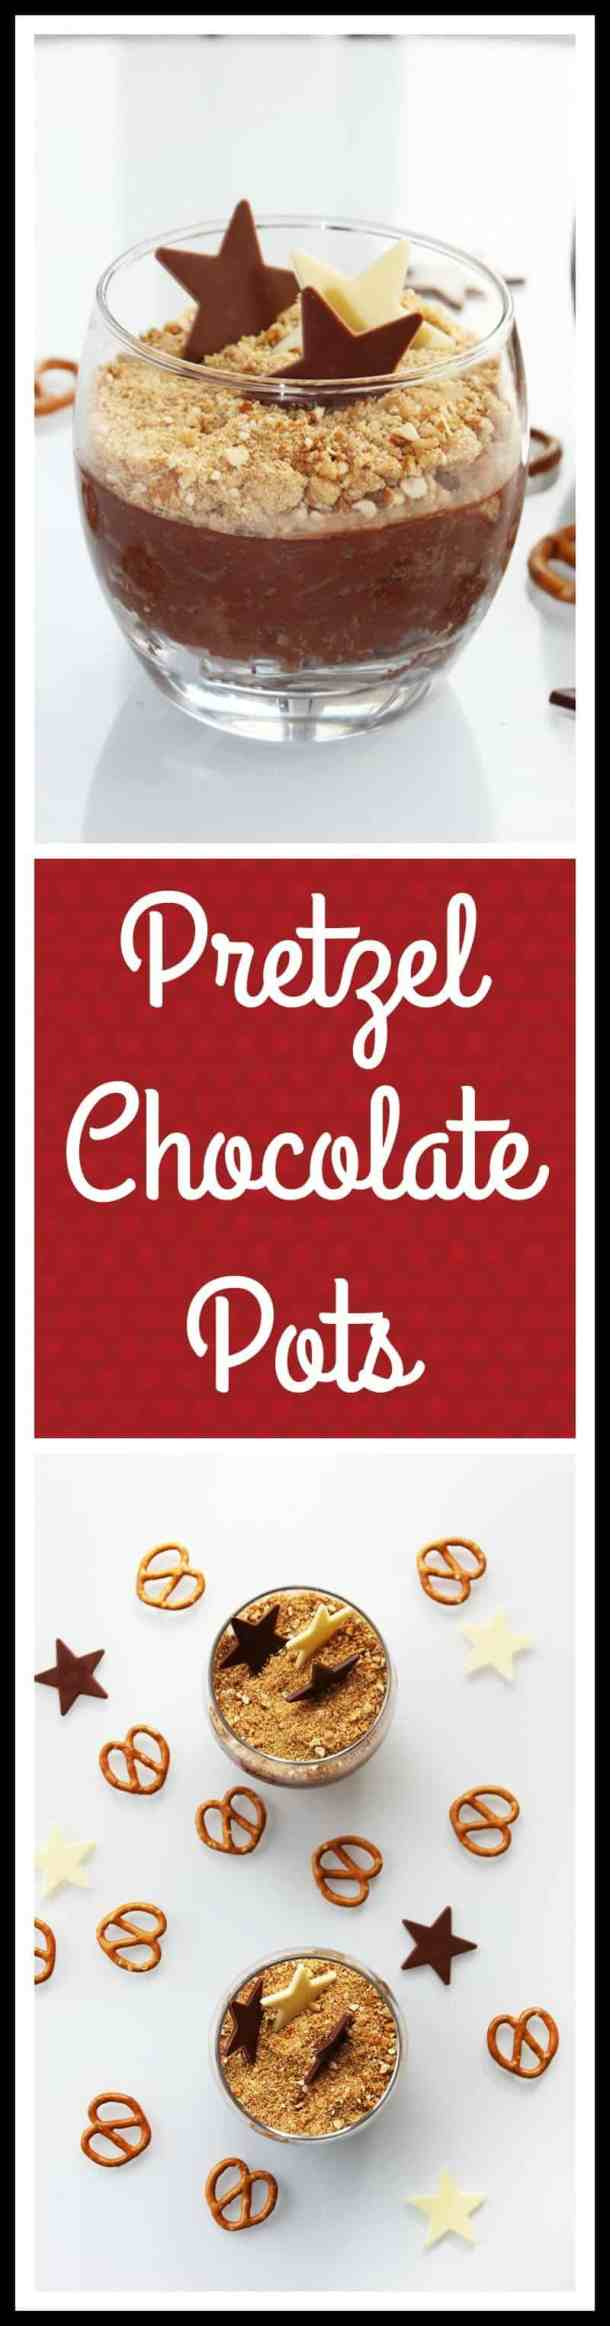 Pretzel Chocolate Pots are an easy no bake dessert. Creamy smooth chocolate topped with crunchy pretzel pieces